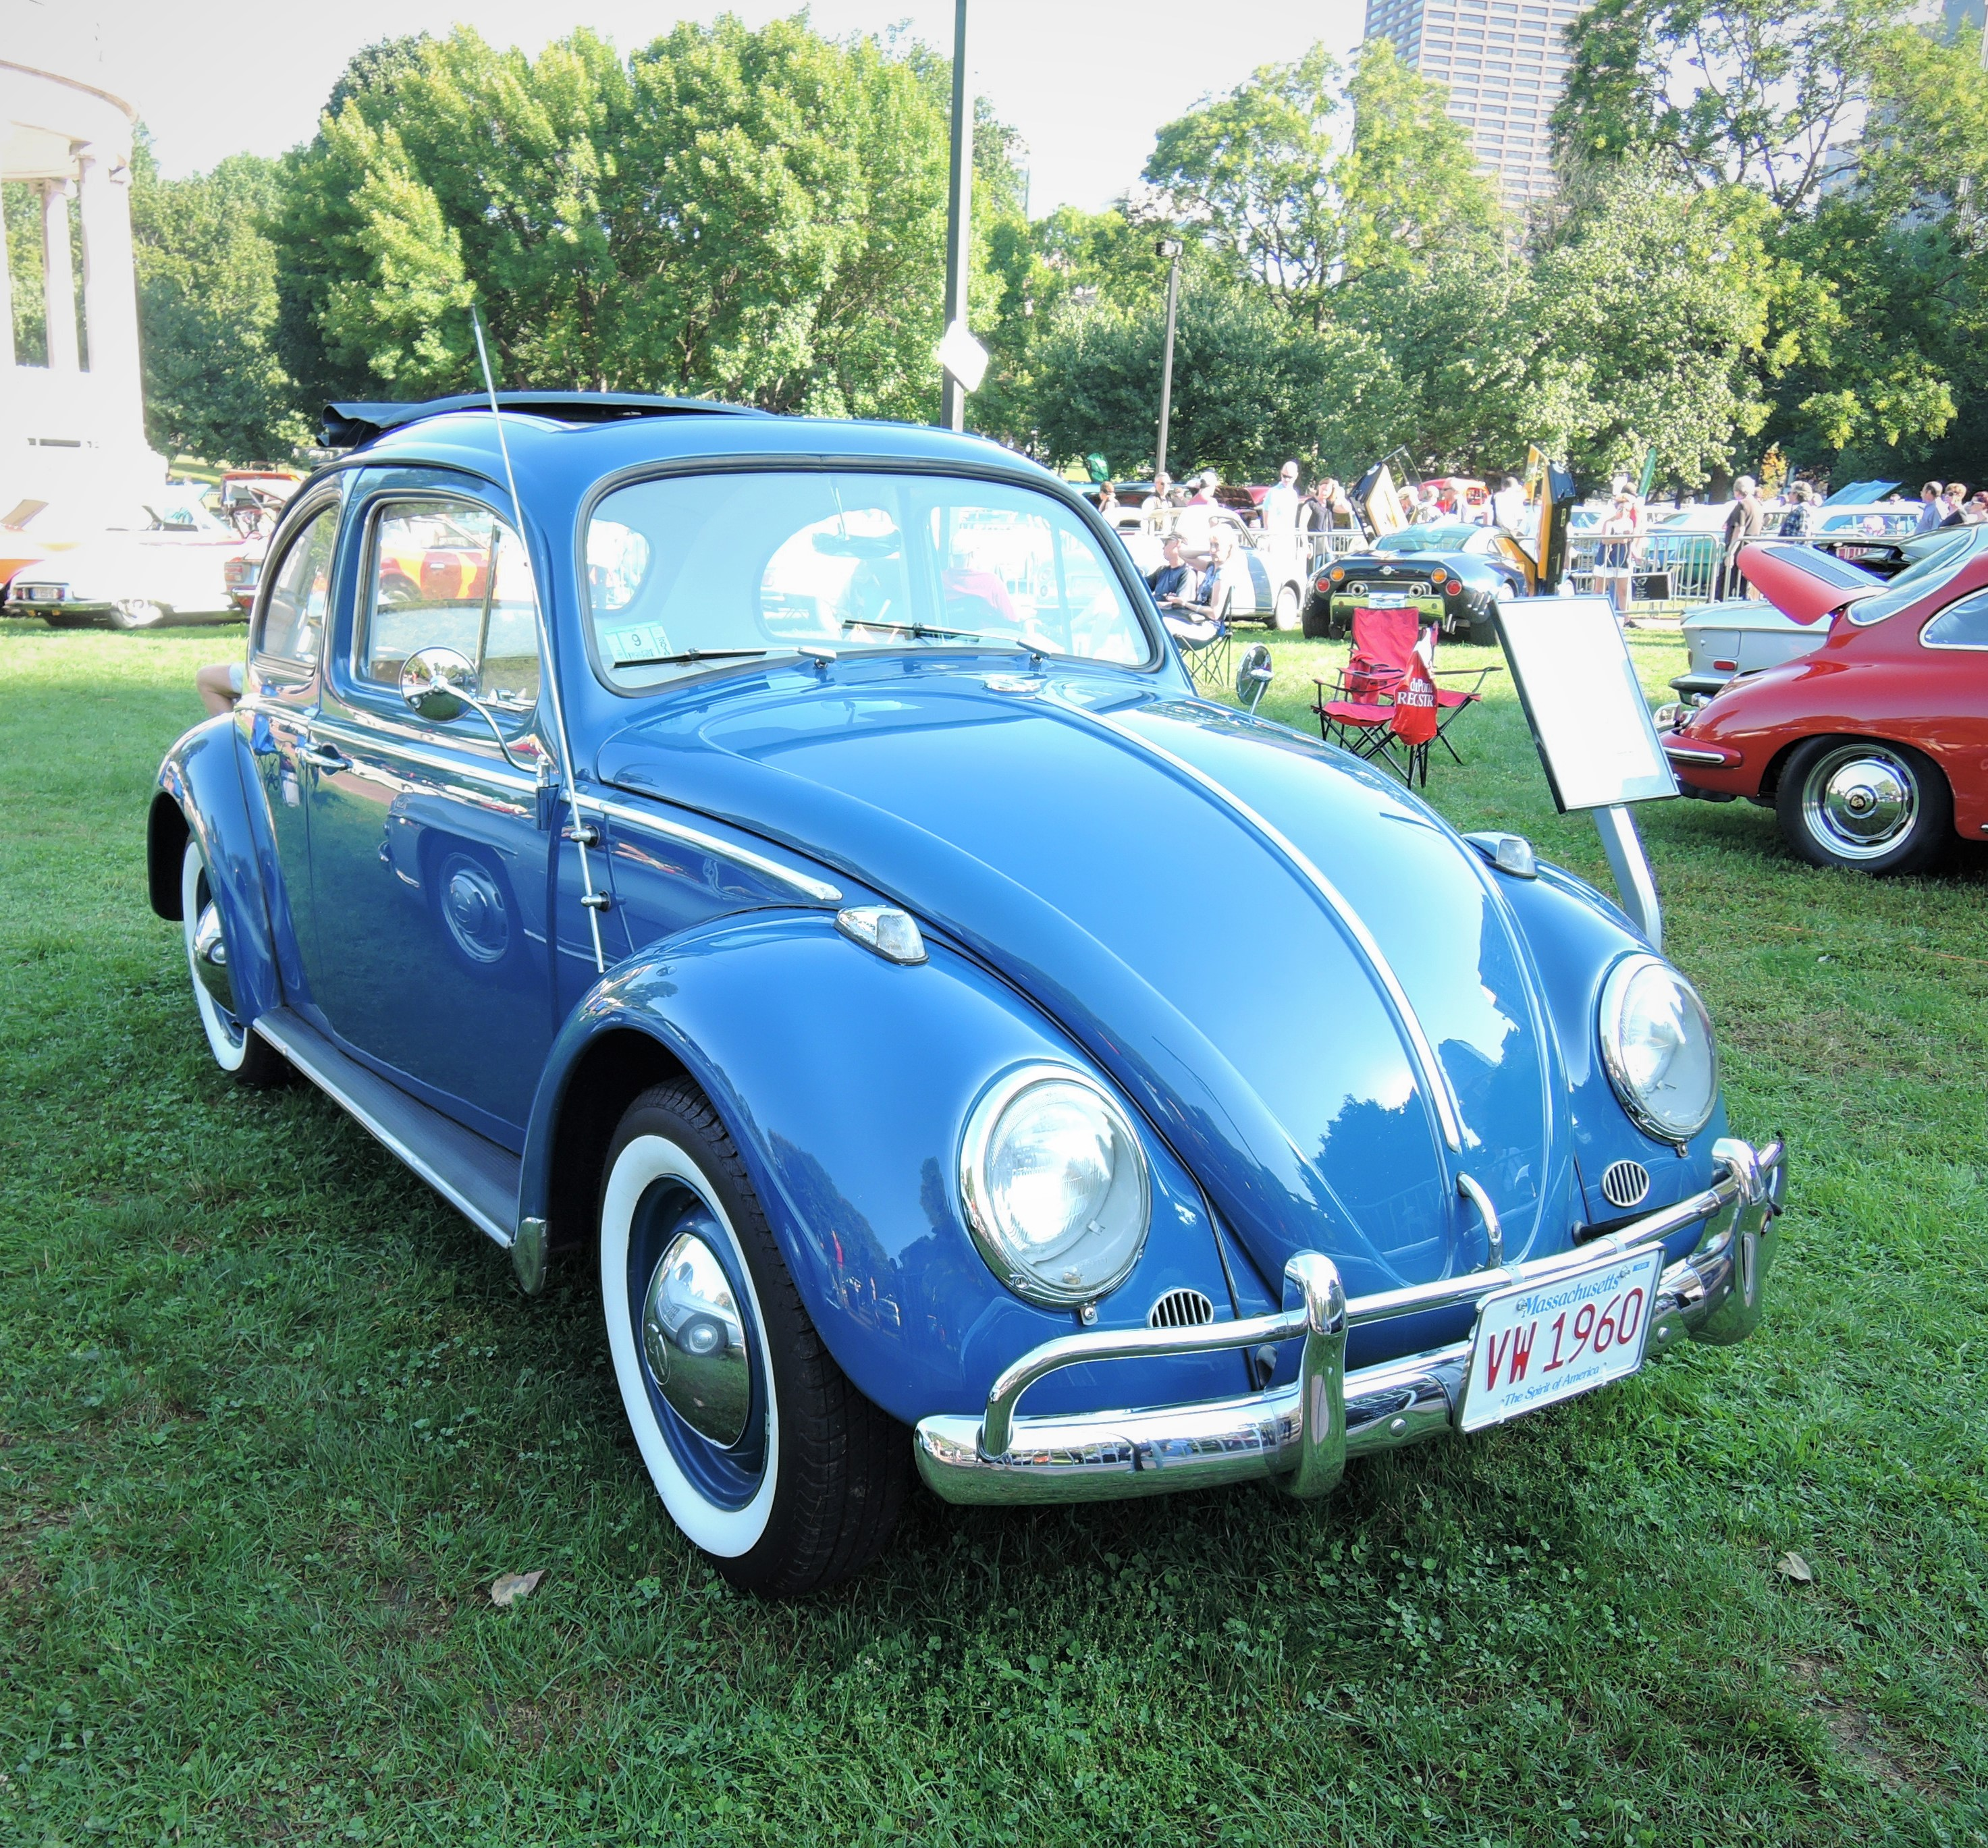 blue 1960 Volkswagen Beetle Sunroof Sedan - The Boston Cup 2017